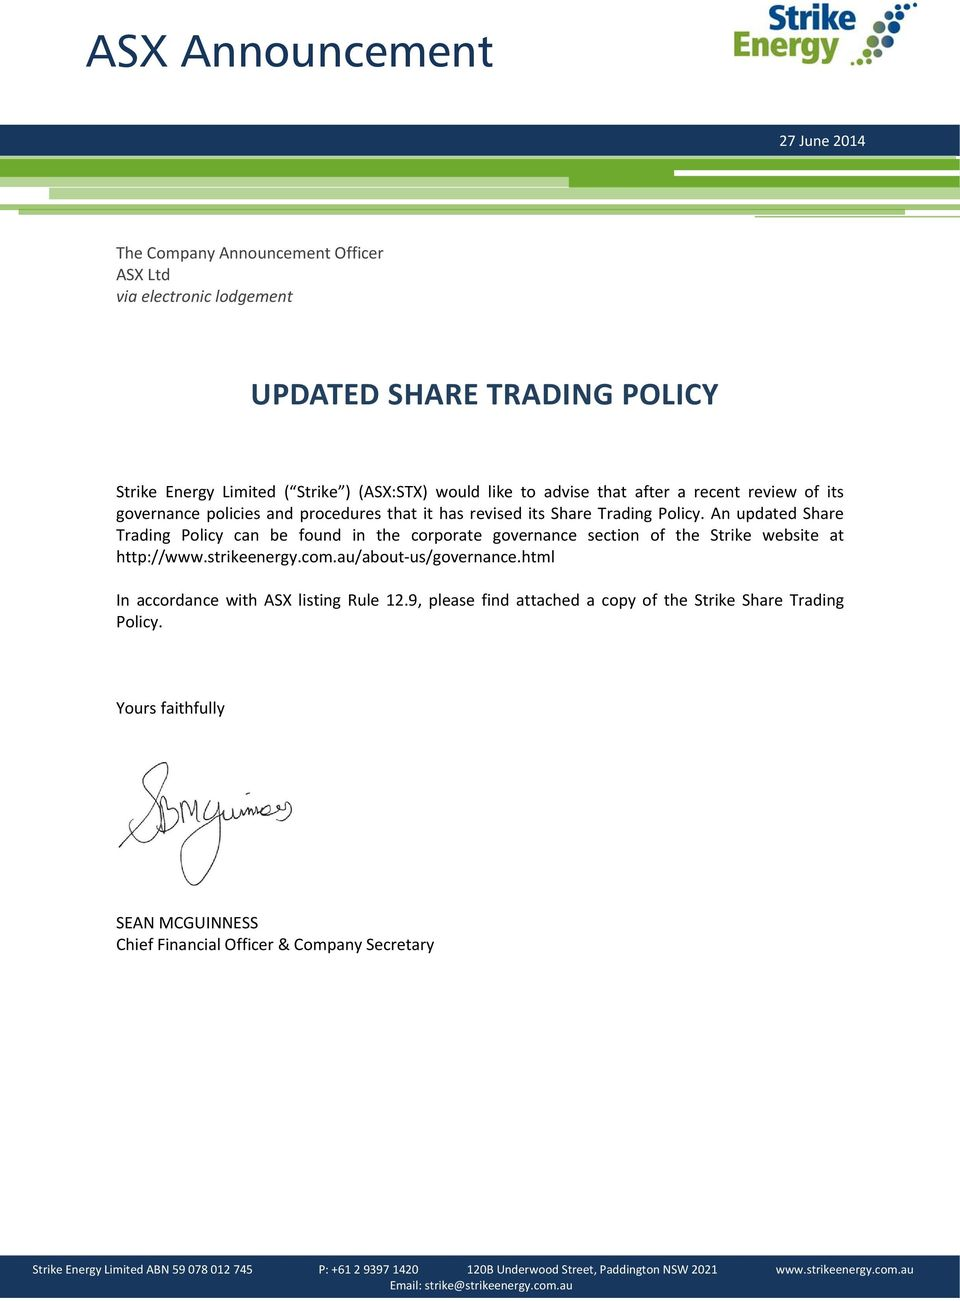 An updated Share Trading Policy can be found in the corporate governance section of the Strike website at http://www.strikeenergy.com.au/about us/governance.